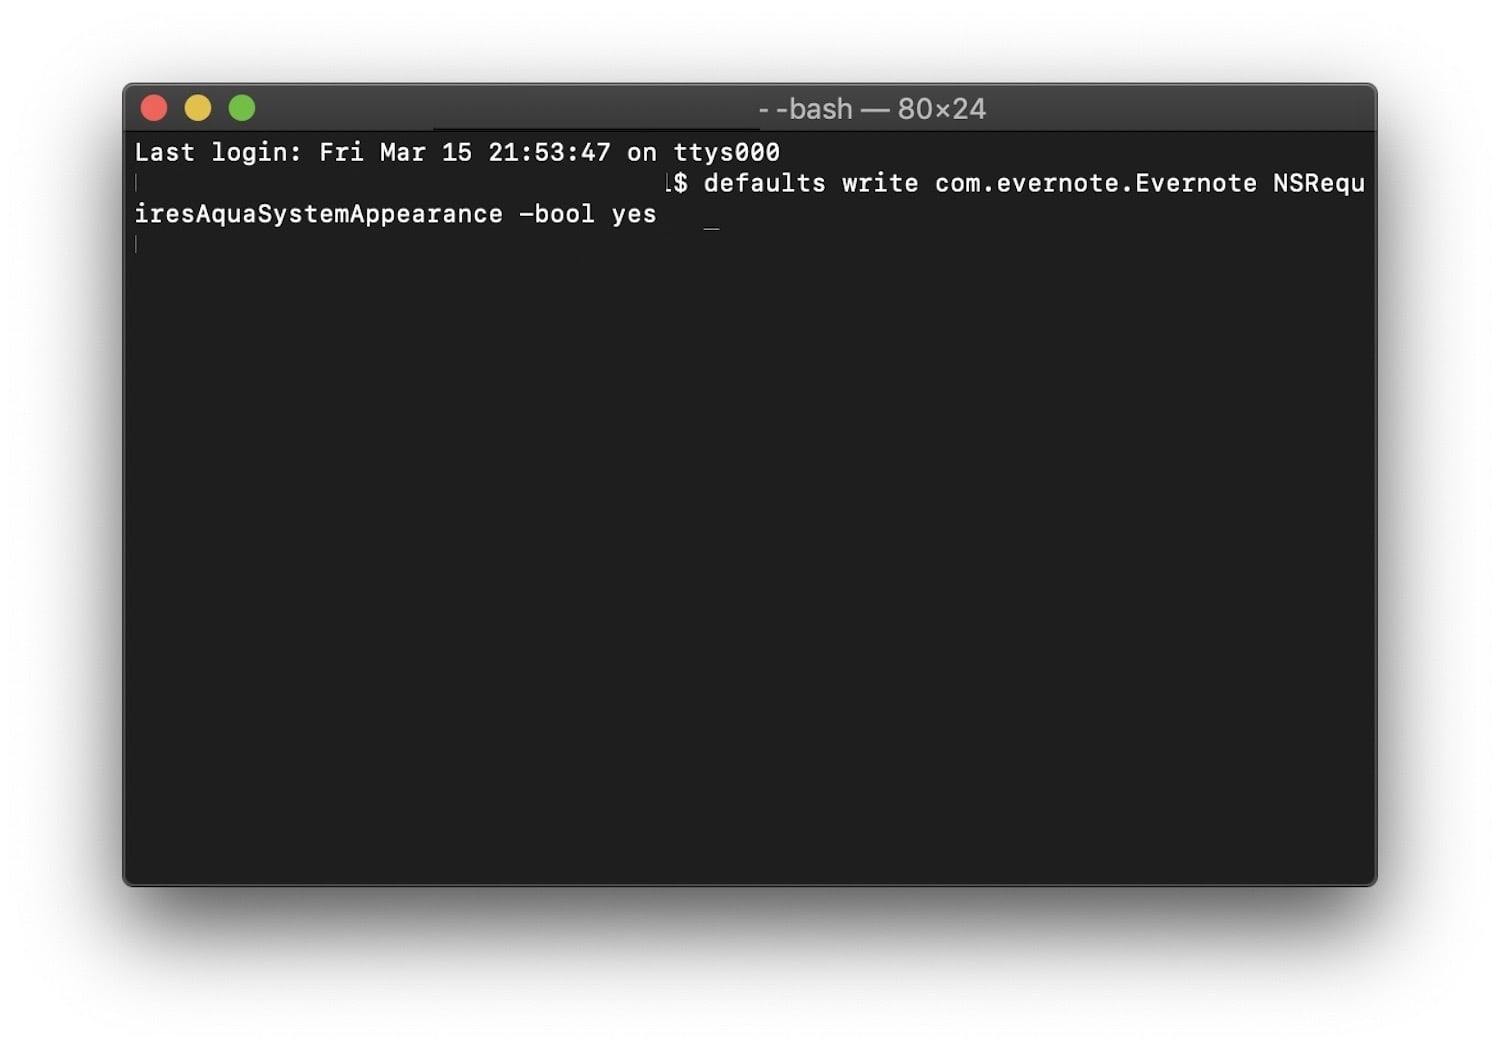 Terminal Window with Evernote command